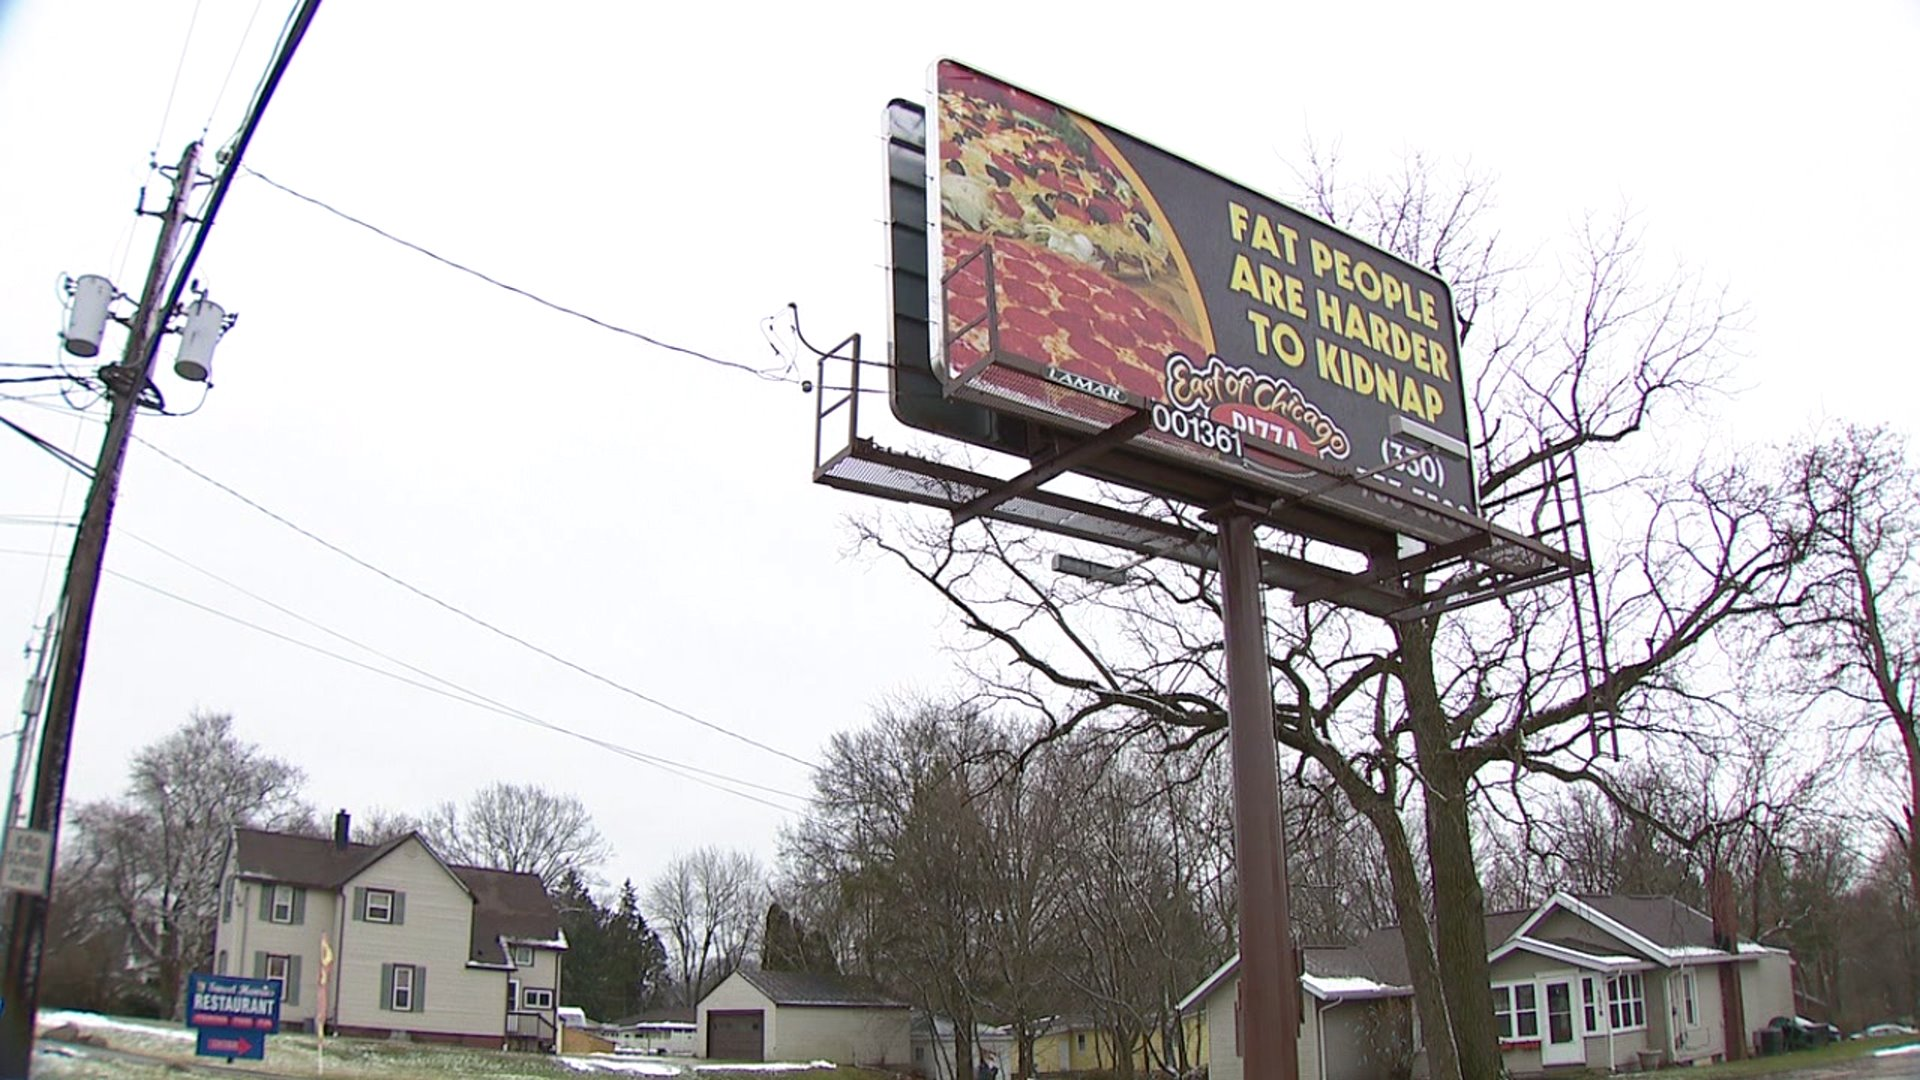 Pizza shop takes down billboard making light of human trafficking: 'Very poor taste, very offensive'